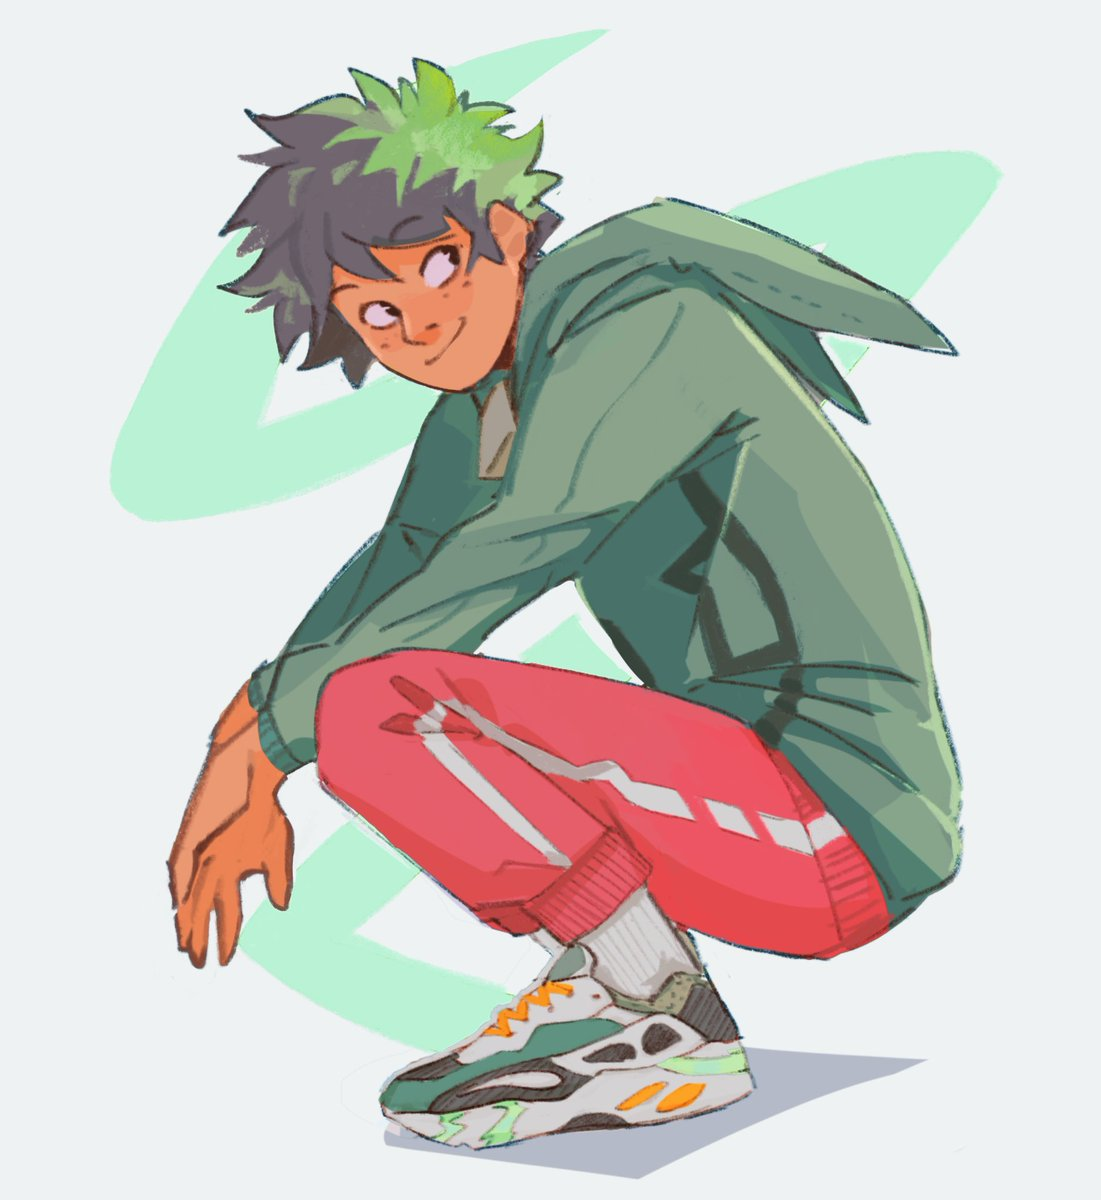 Who knew wearing your own merch could be so good for your self esteem #midoriya